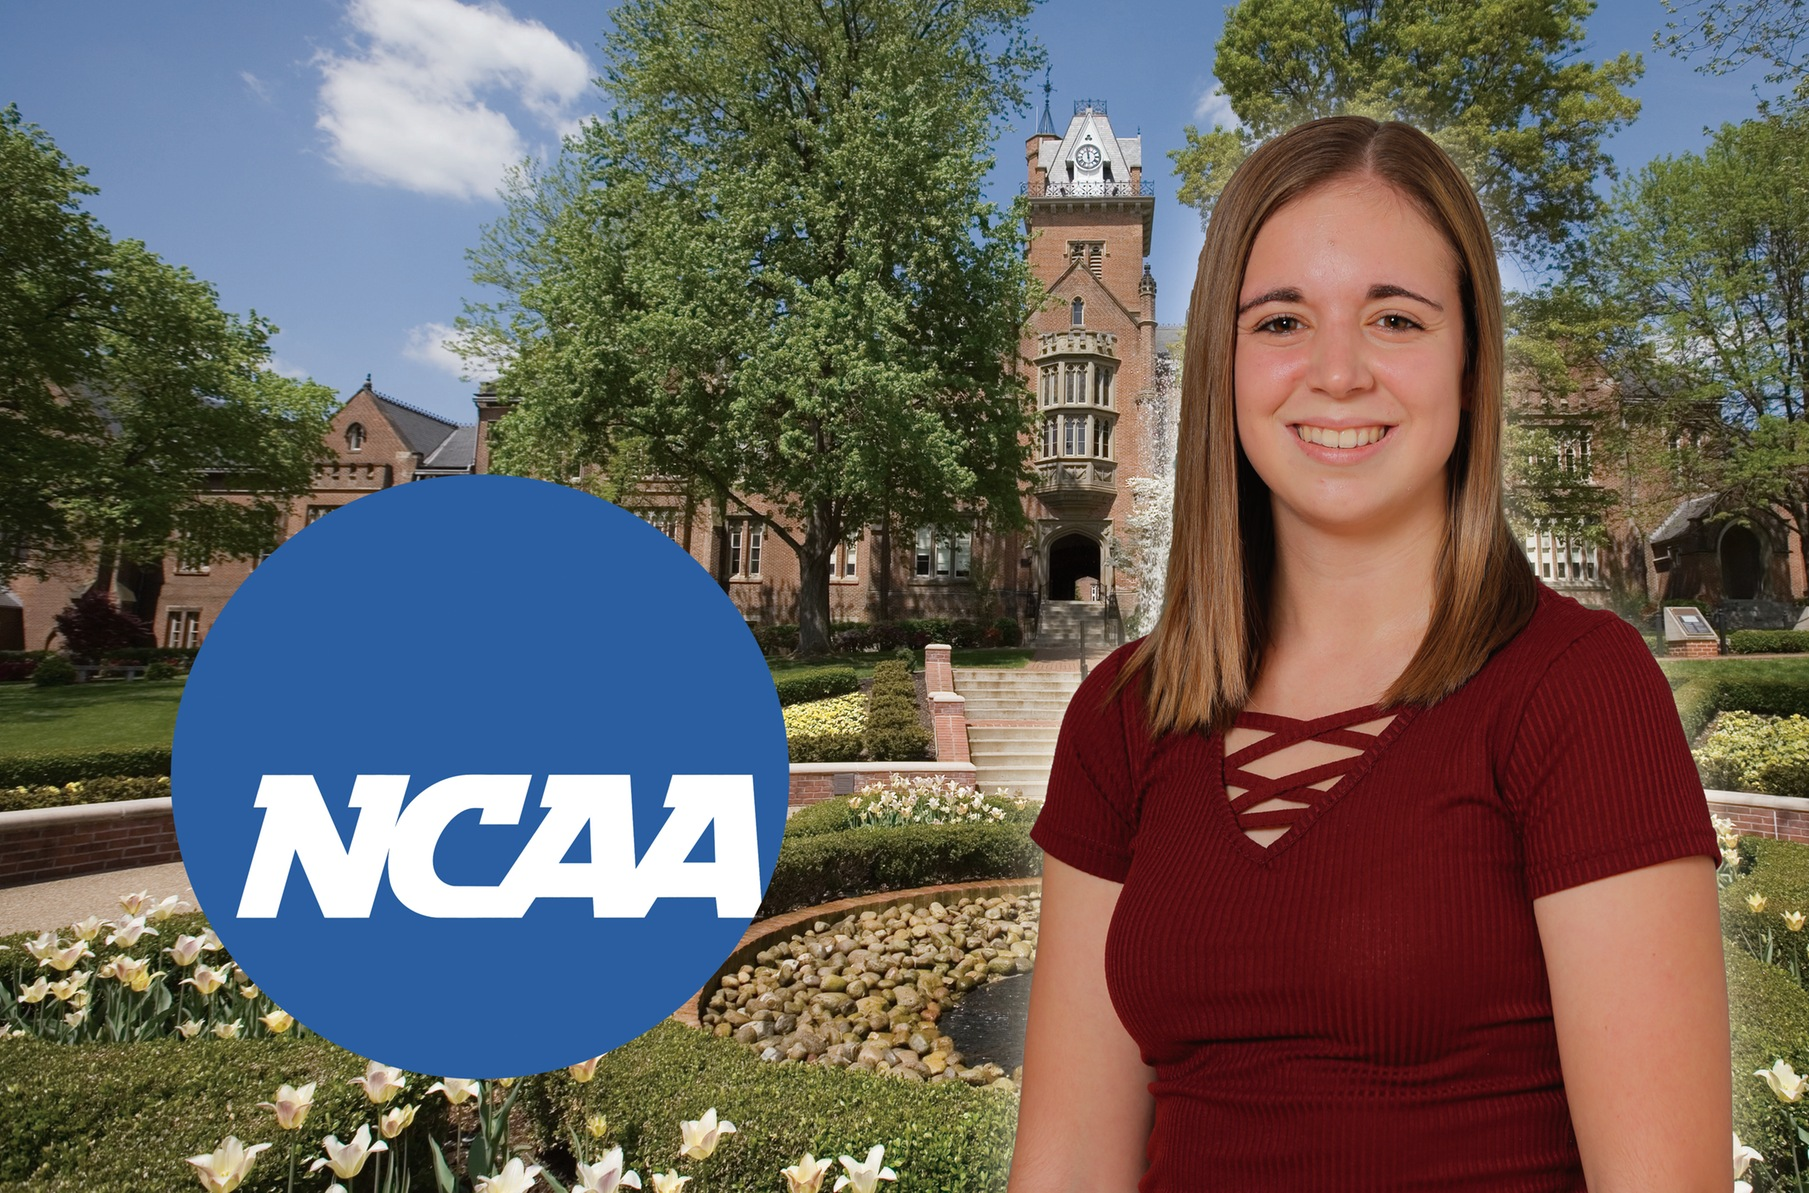 PAC selects Simpson as NCAA Woman of the Year nominee